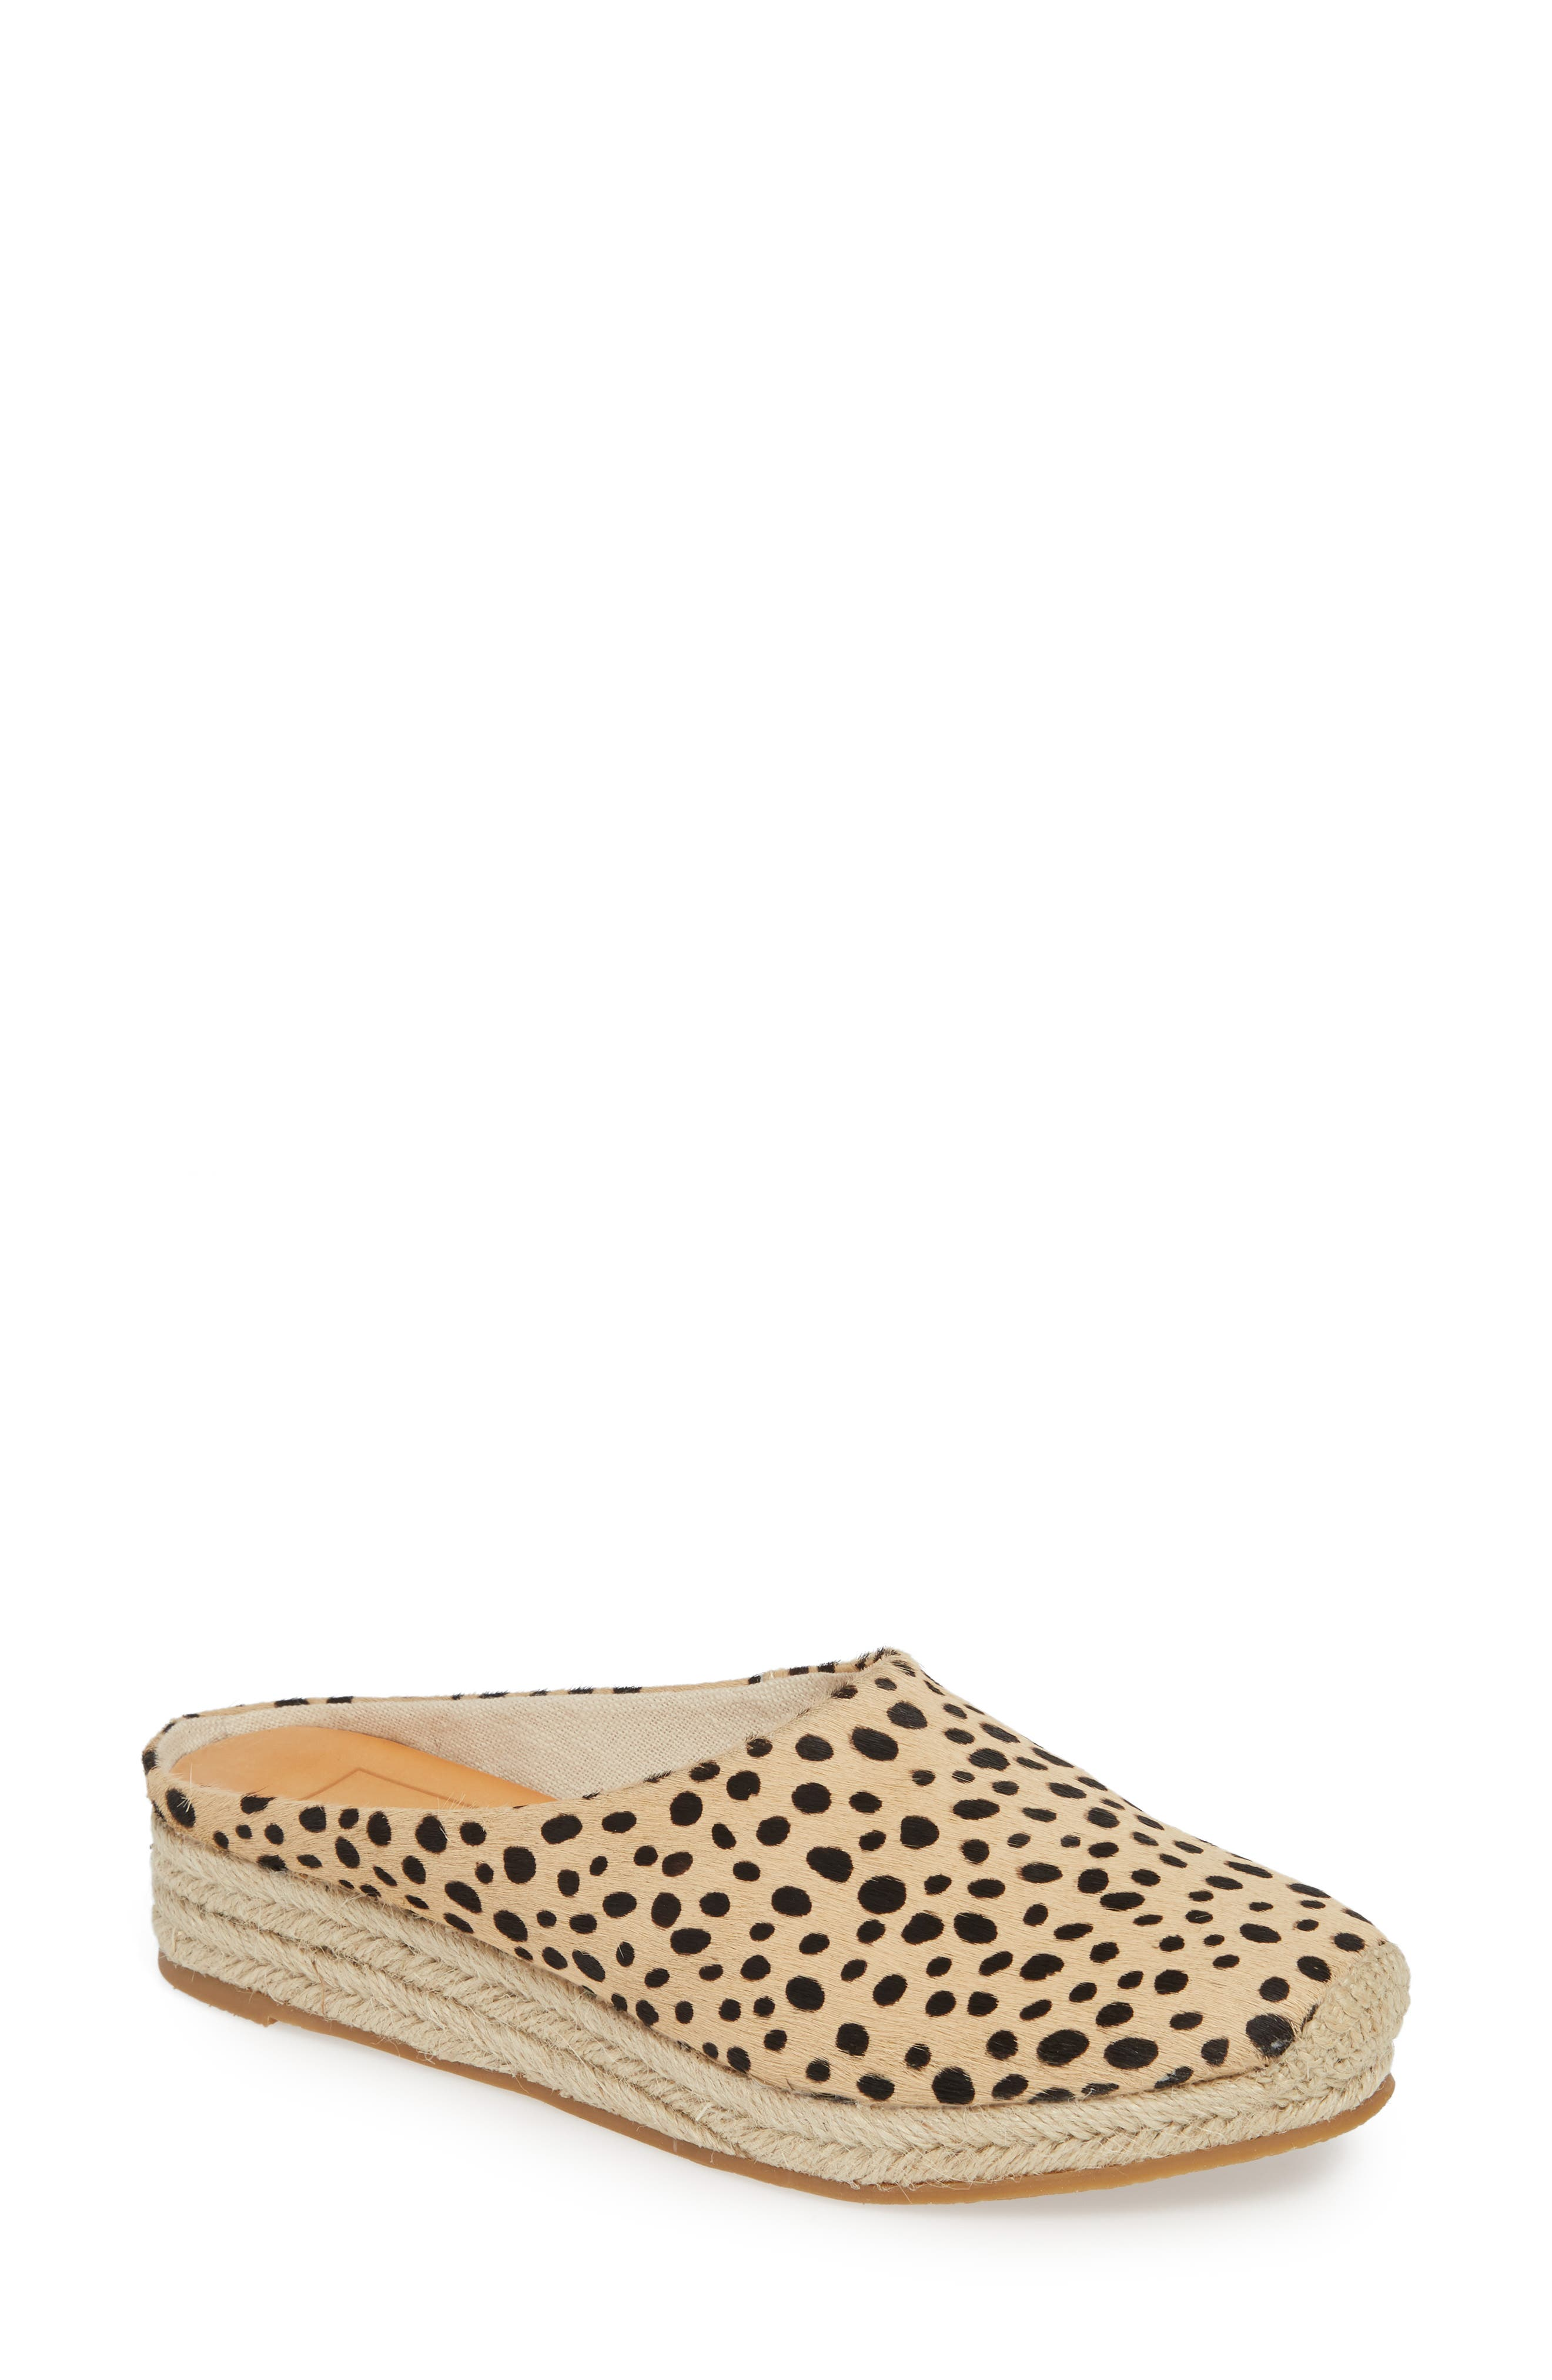 DOLCE VITA Brandi Genuine Calf Hair Espadrille Mule, Main, color, LEOPARD PRINT CALF HAIR